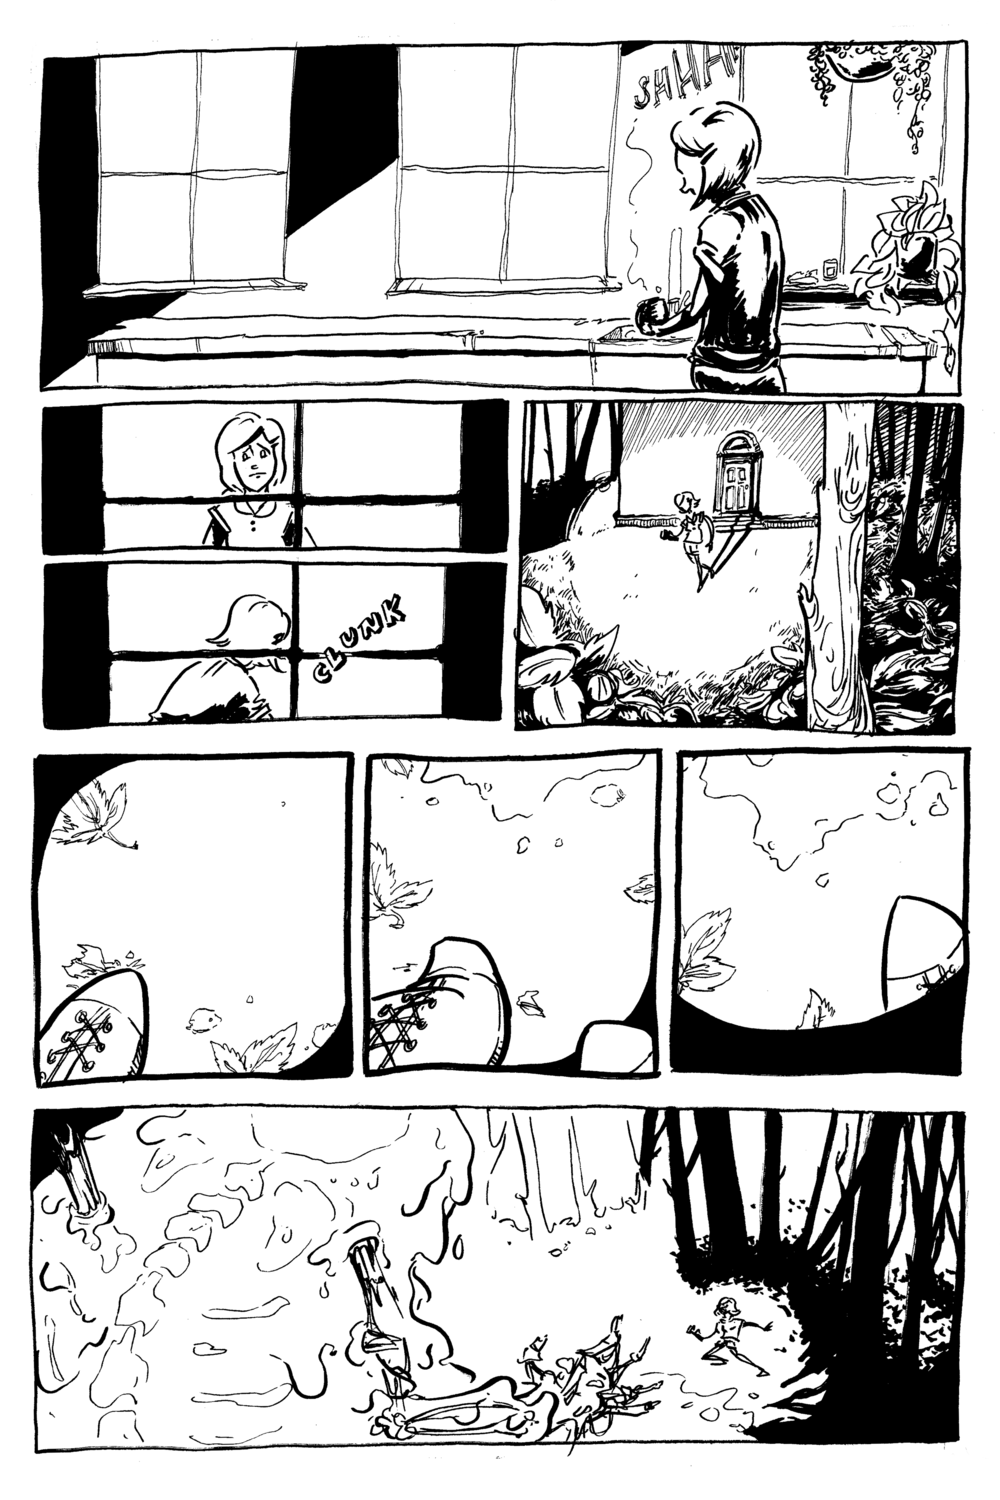 JERRY - A short 4-page comic about a girl who misses her late brother, terribly.